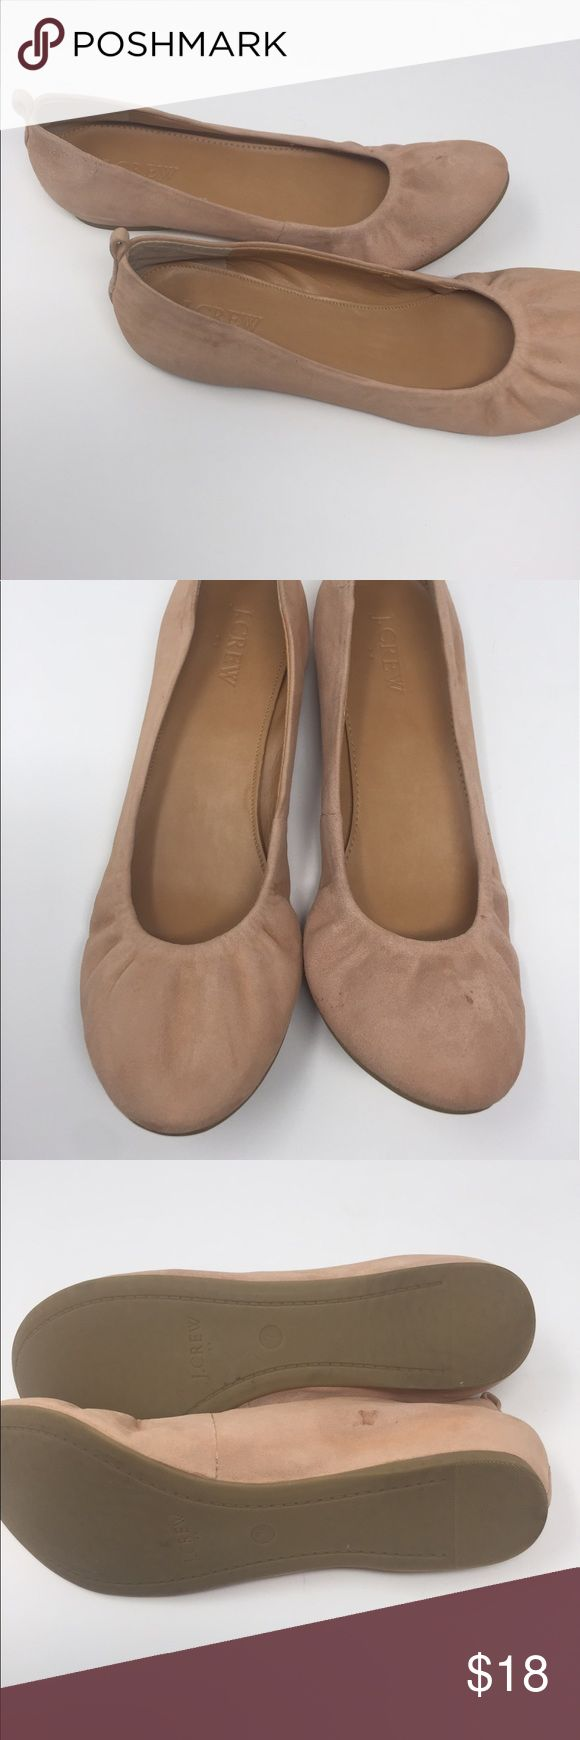 J Crew Flats Blush pink suede flats in size 7. It has 2 spots on the shoes, that I cannot get off. One small spot on the top and another on the side. Adorable shoes, that are comfortable and cute for any occasion. J. Crew Shoes Flats & Loafers